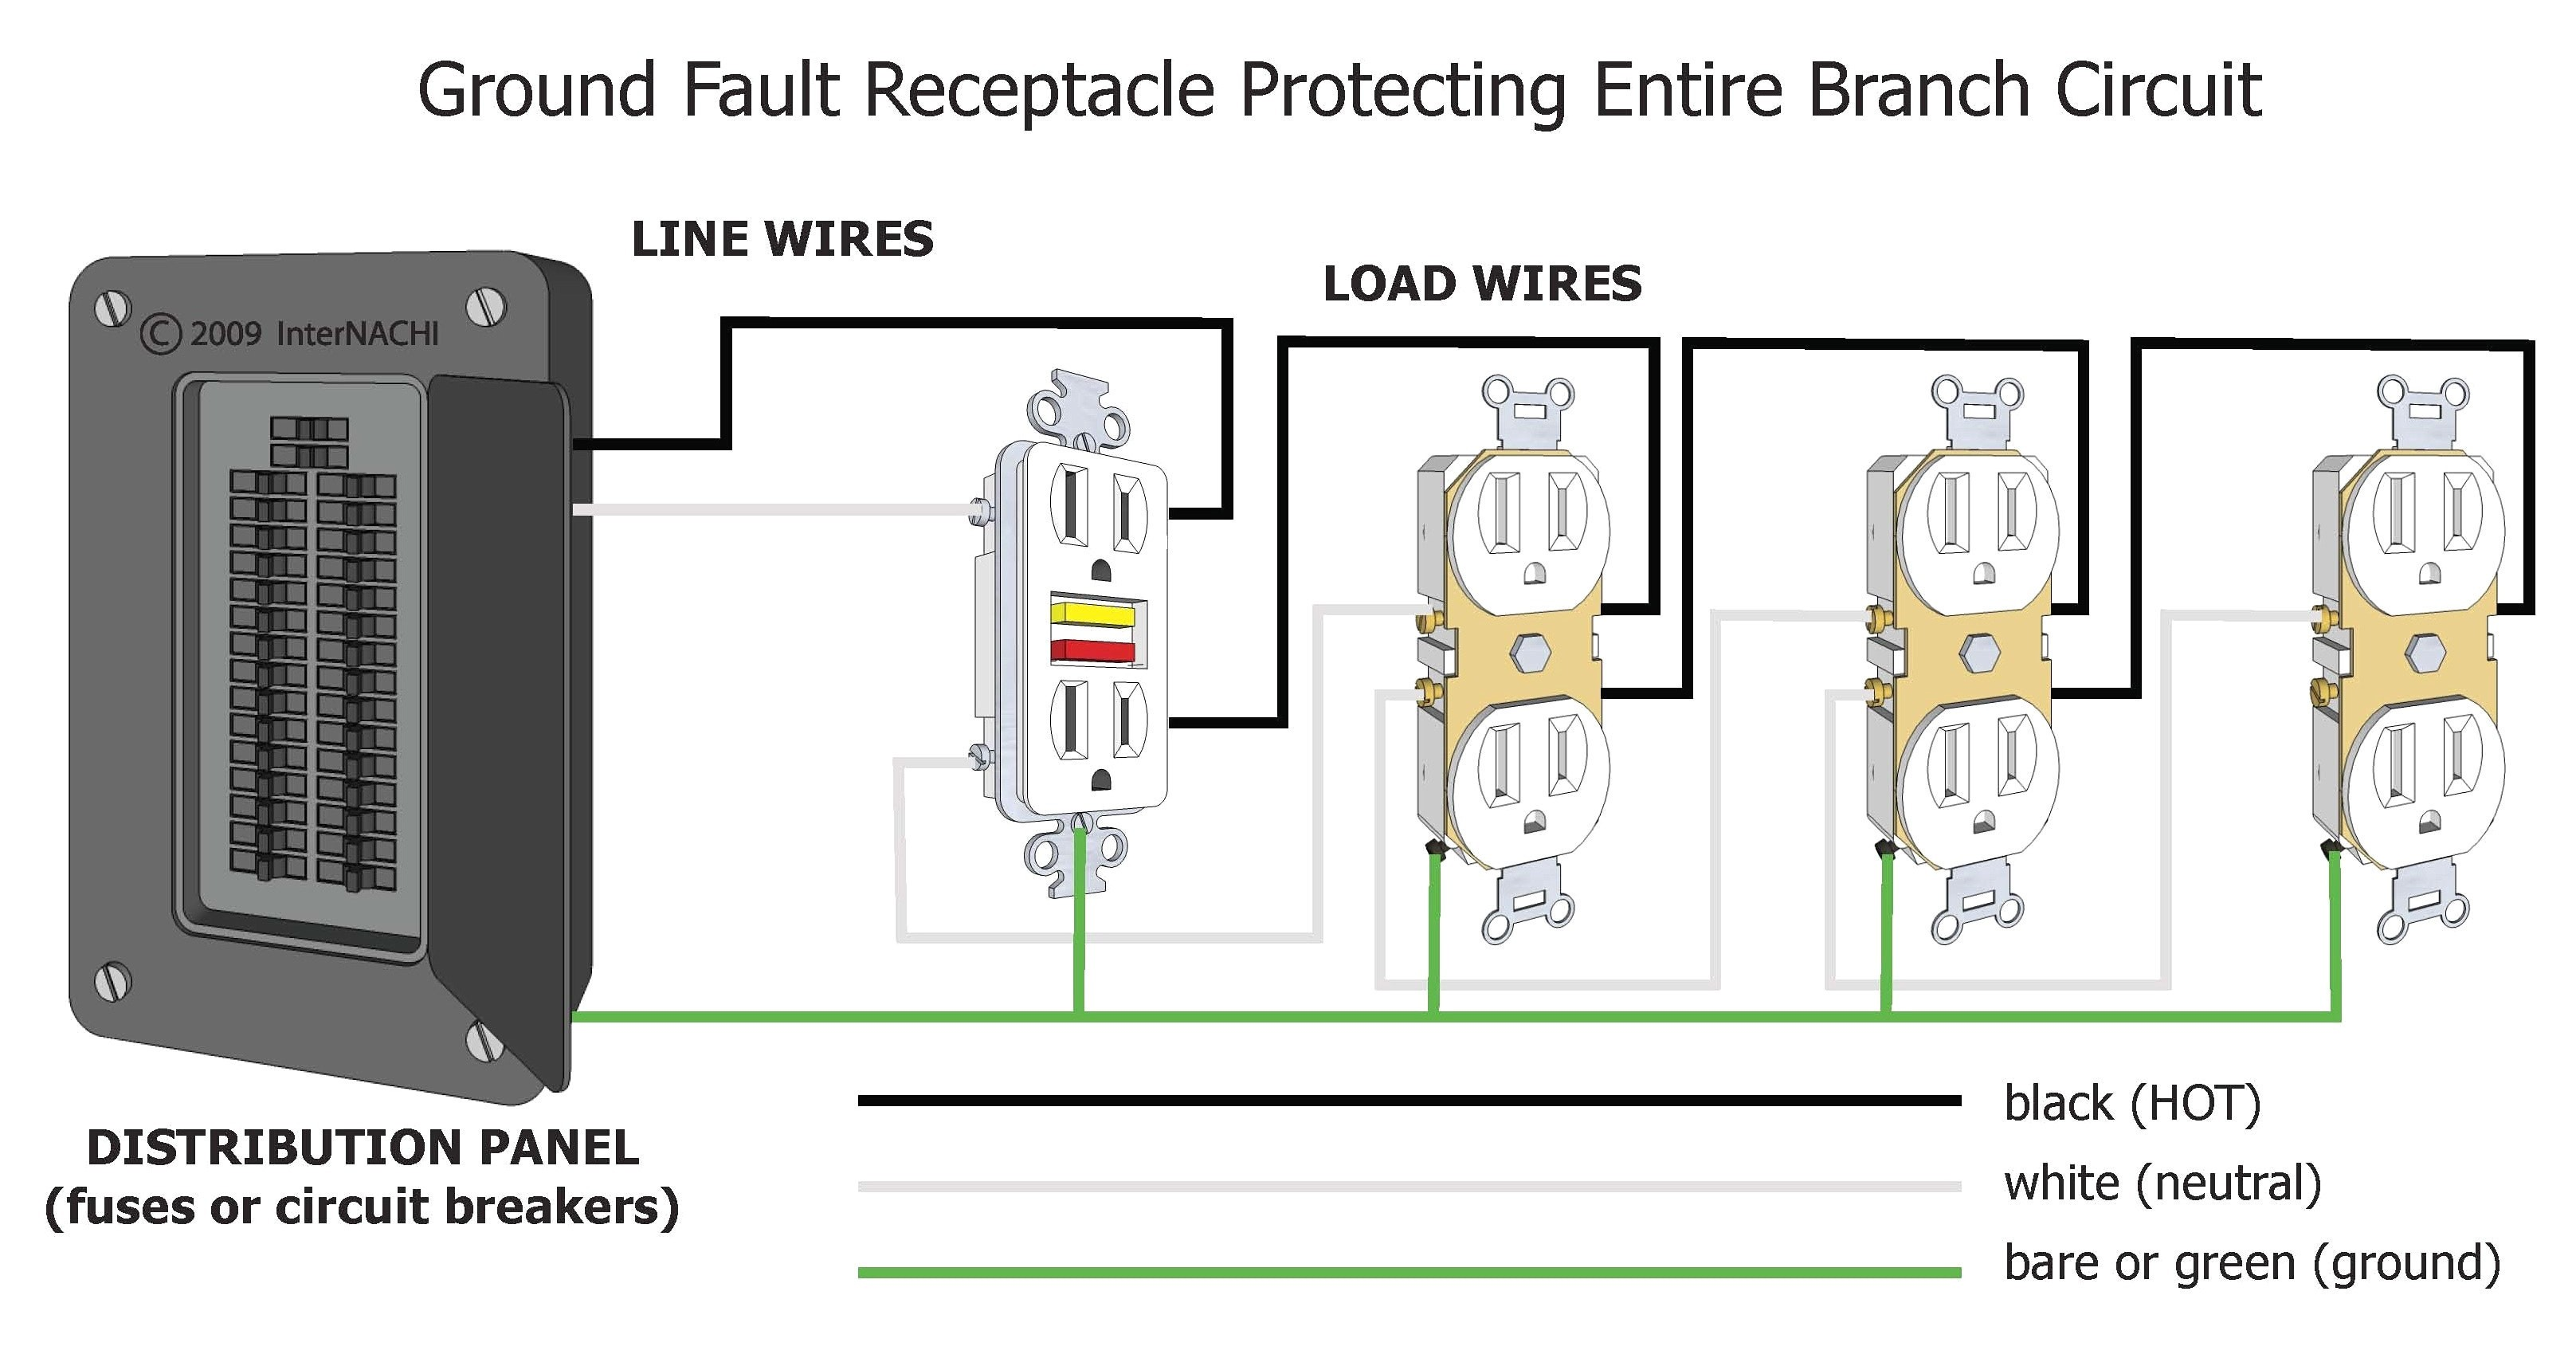 12v Switch Panel Wiring Diagram Circuit Breaker Panel Wiring Diagram Pdf Fresh Control Panel Wiring Of 12v Switch Panel Wiring Diagram